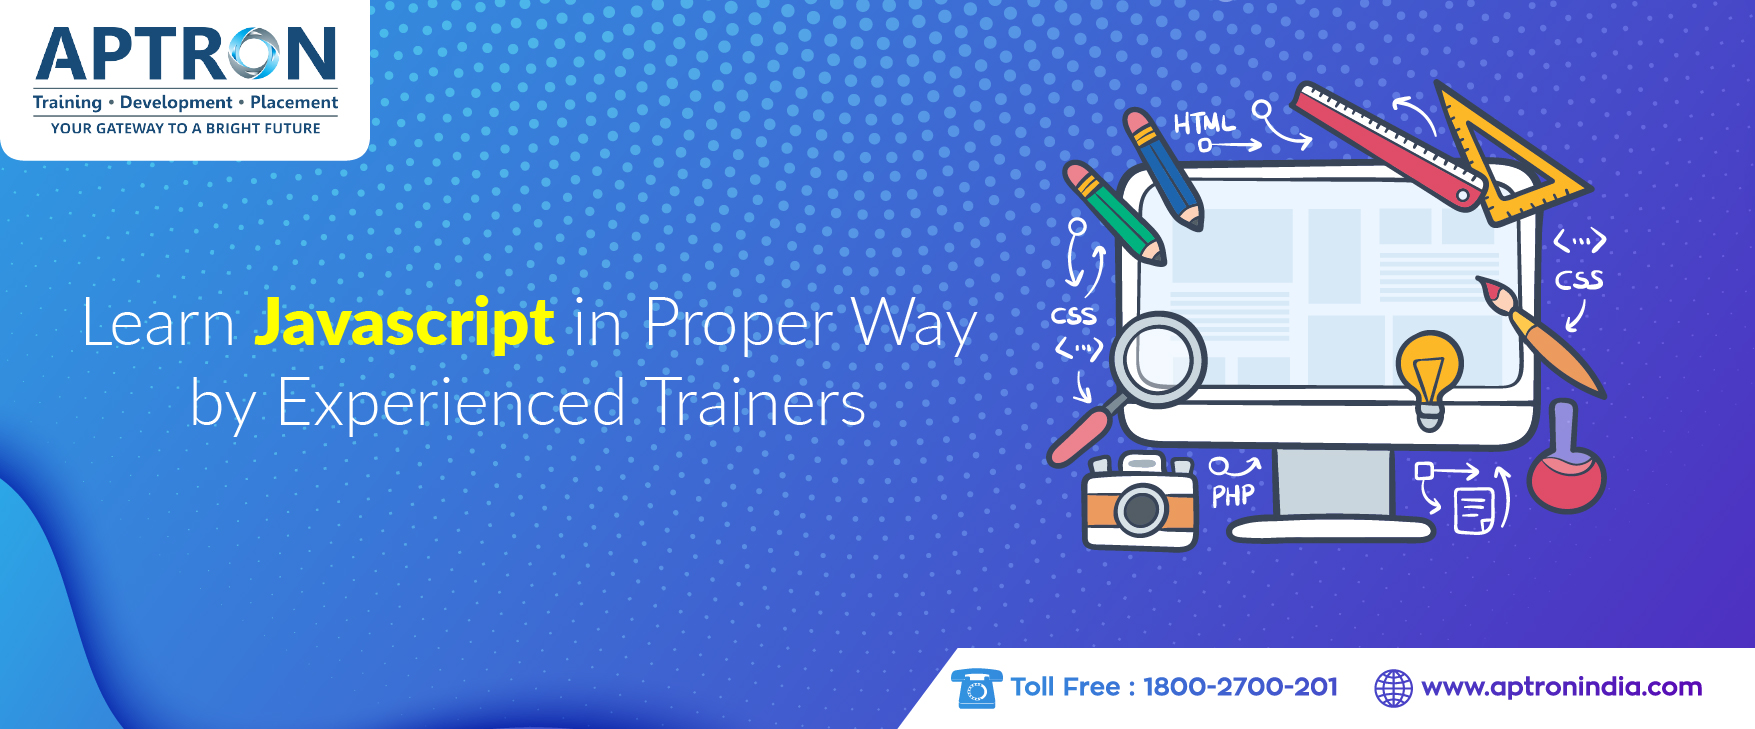 Learn JavaScript in Proper Way by Experienced Trainers